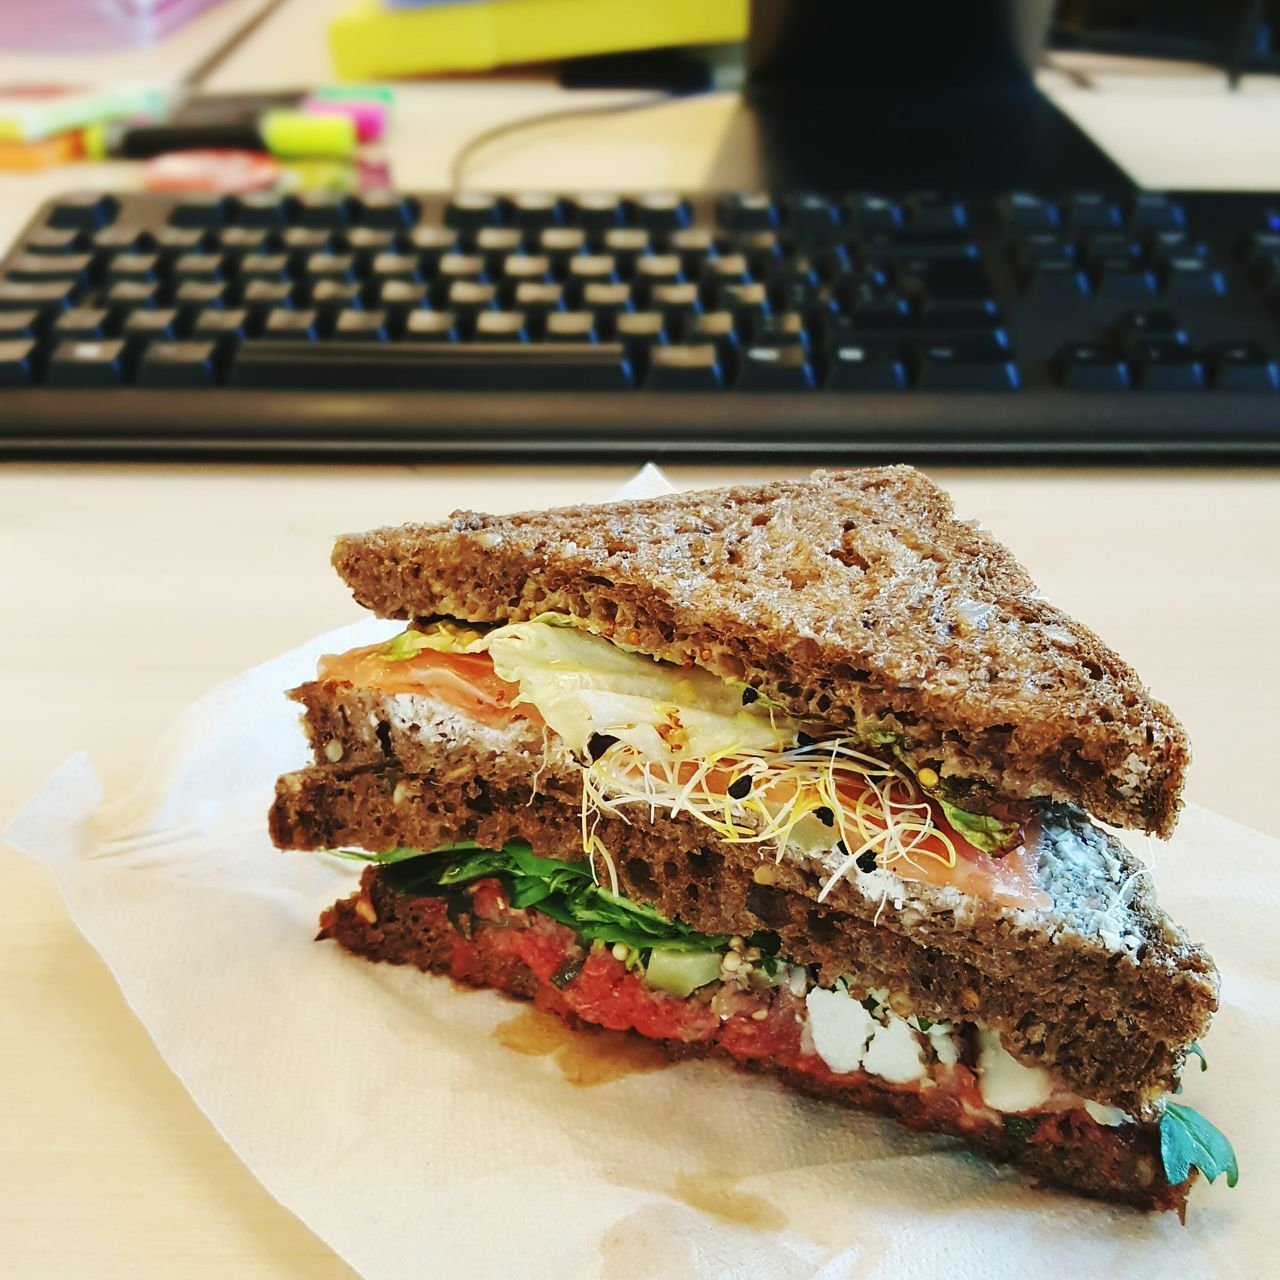 Food Indoors  Desk Work Sandwiches Bread Keyboard Lunch Messy Desk Lunchtime! Yummy Food And Drink Office Food At Work Mmmmm